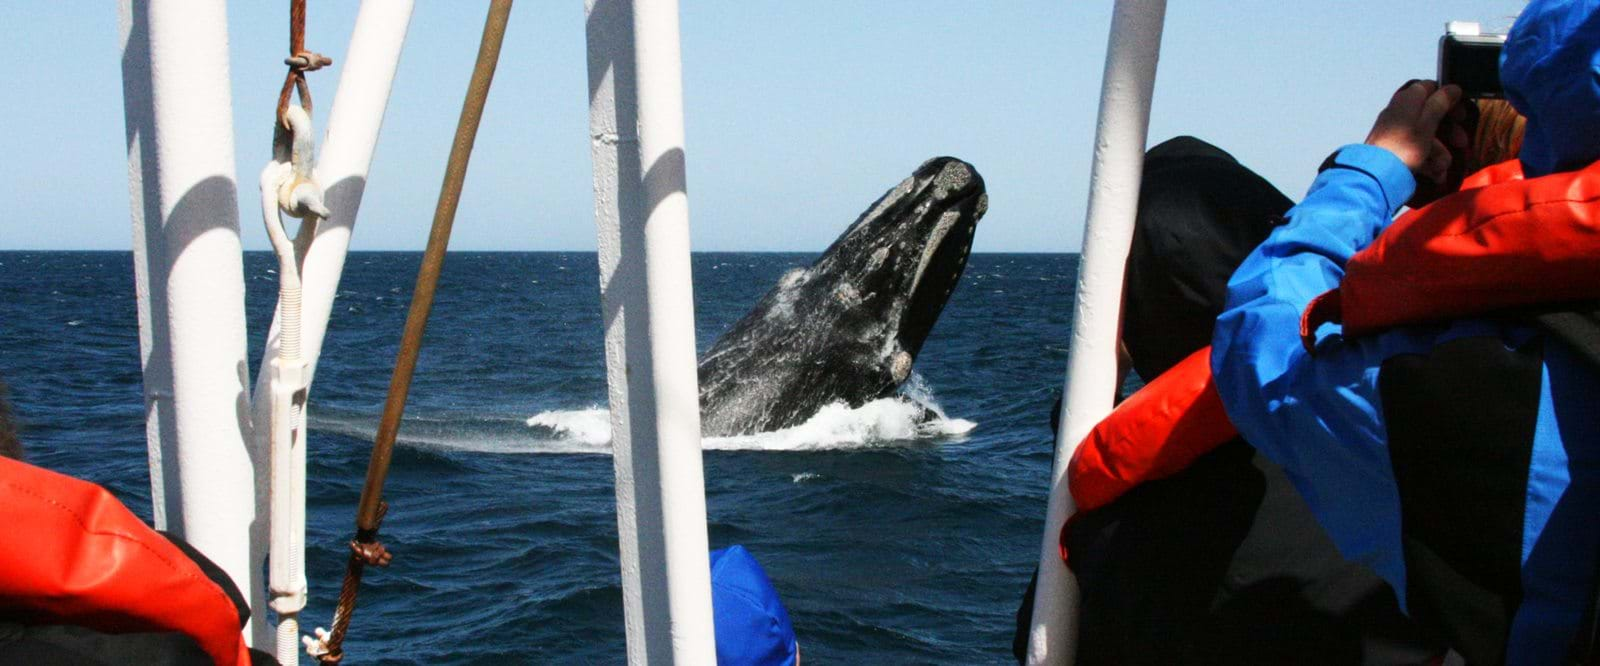 We hope to see the magnificent southern right whale